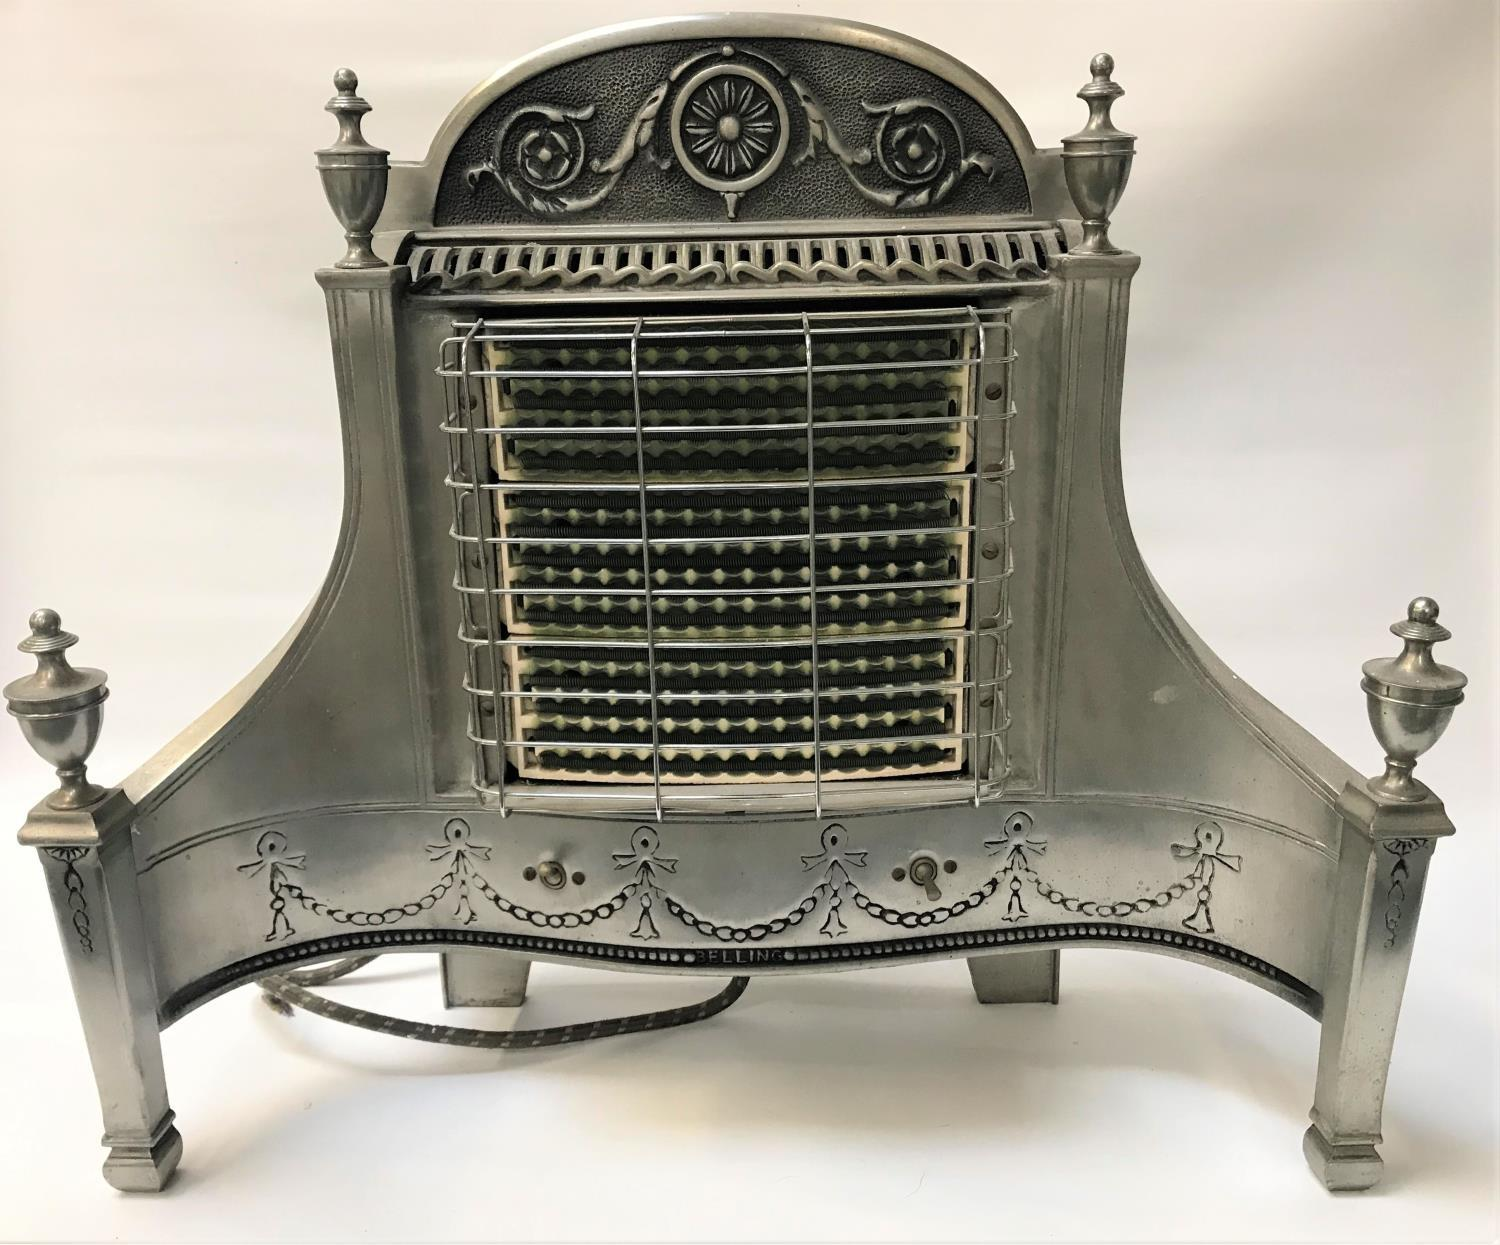 Lot 242 - BELLING & CO ELECTRIC FIRE in the Georgian style of shaped form with urn finial decoration